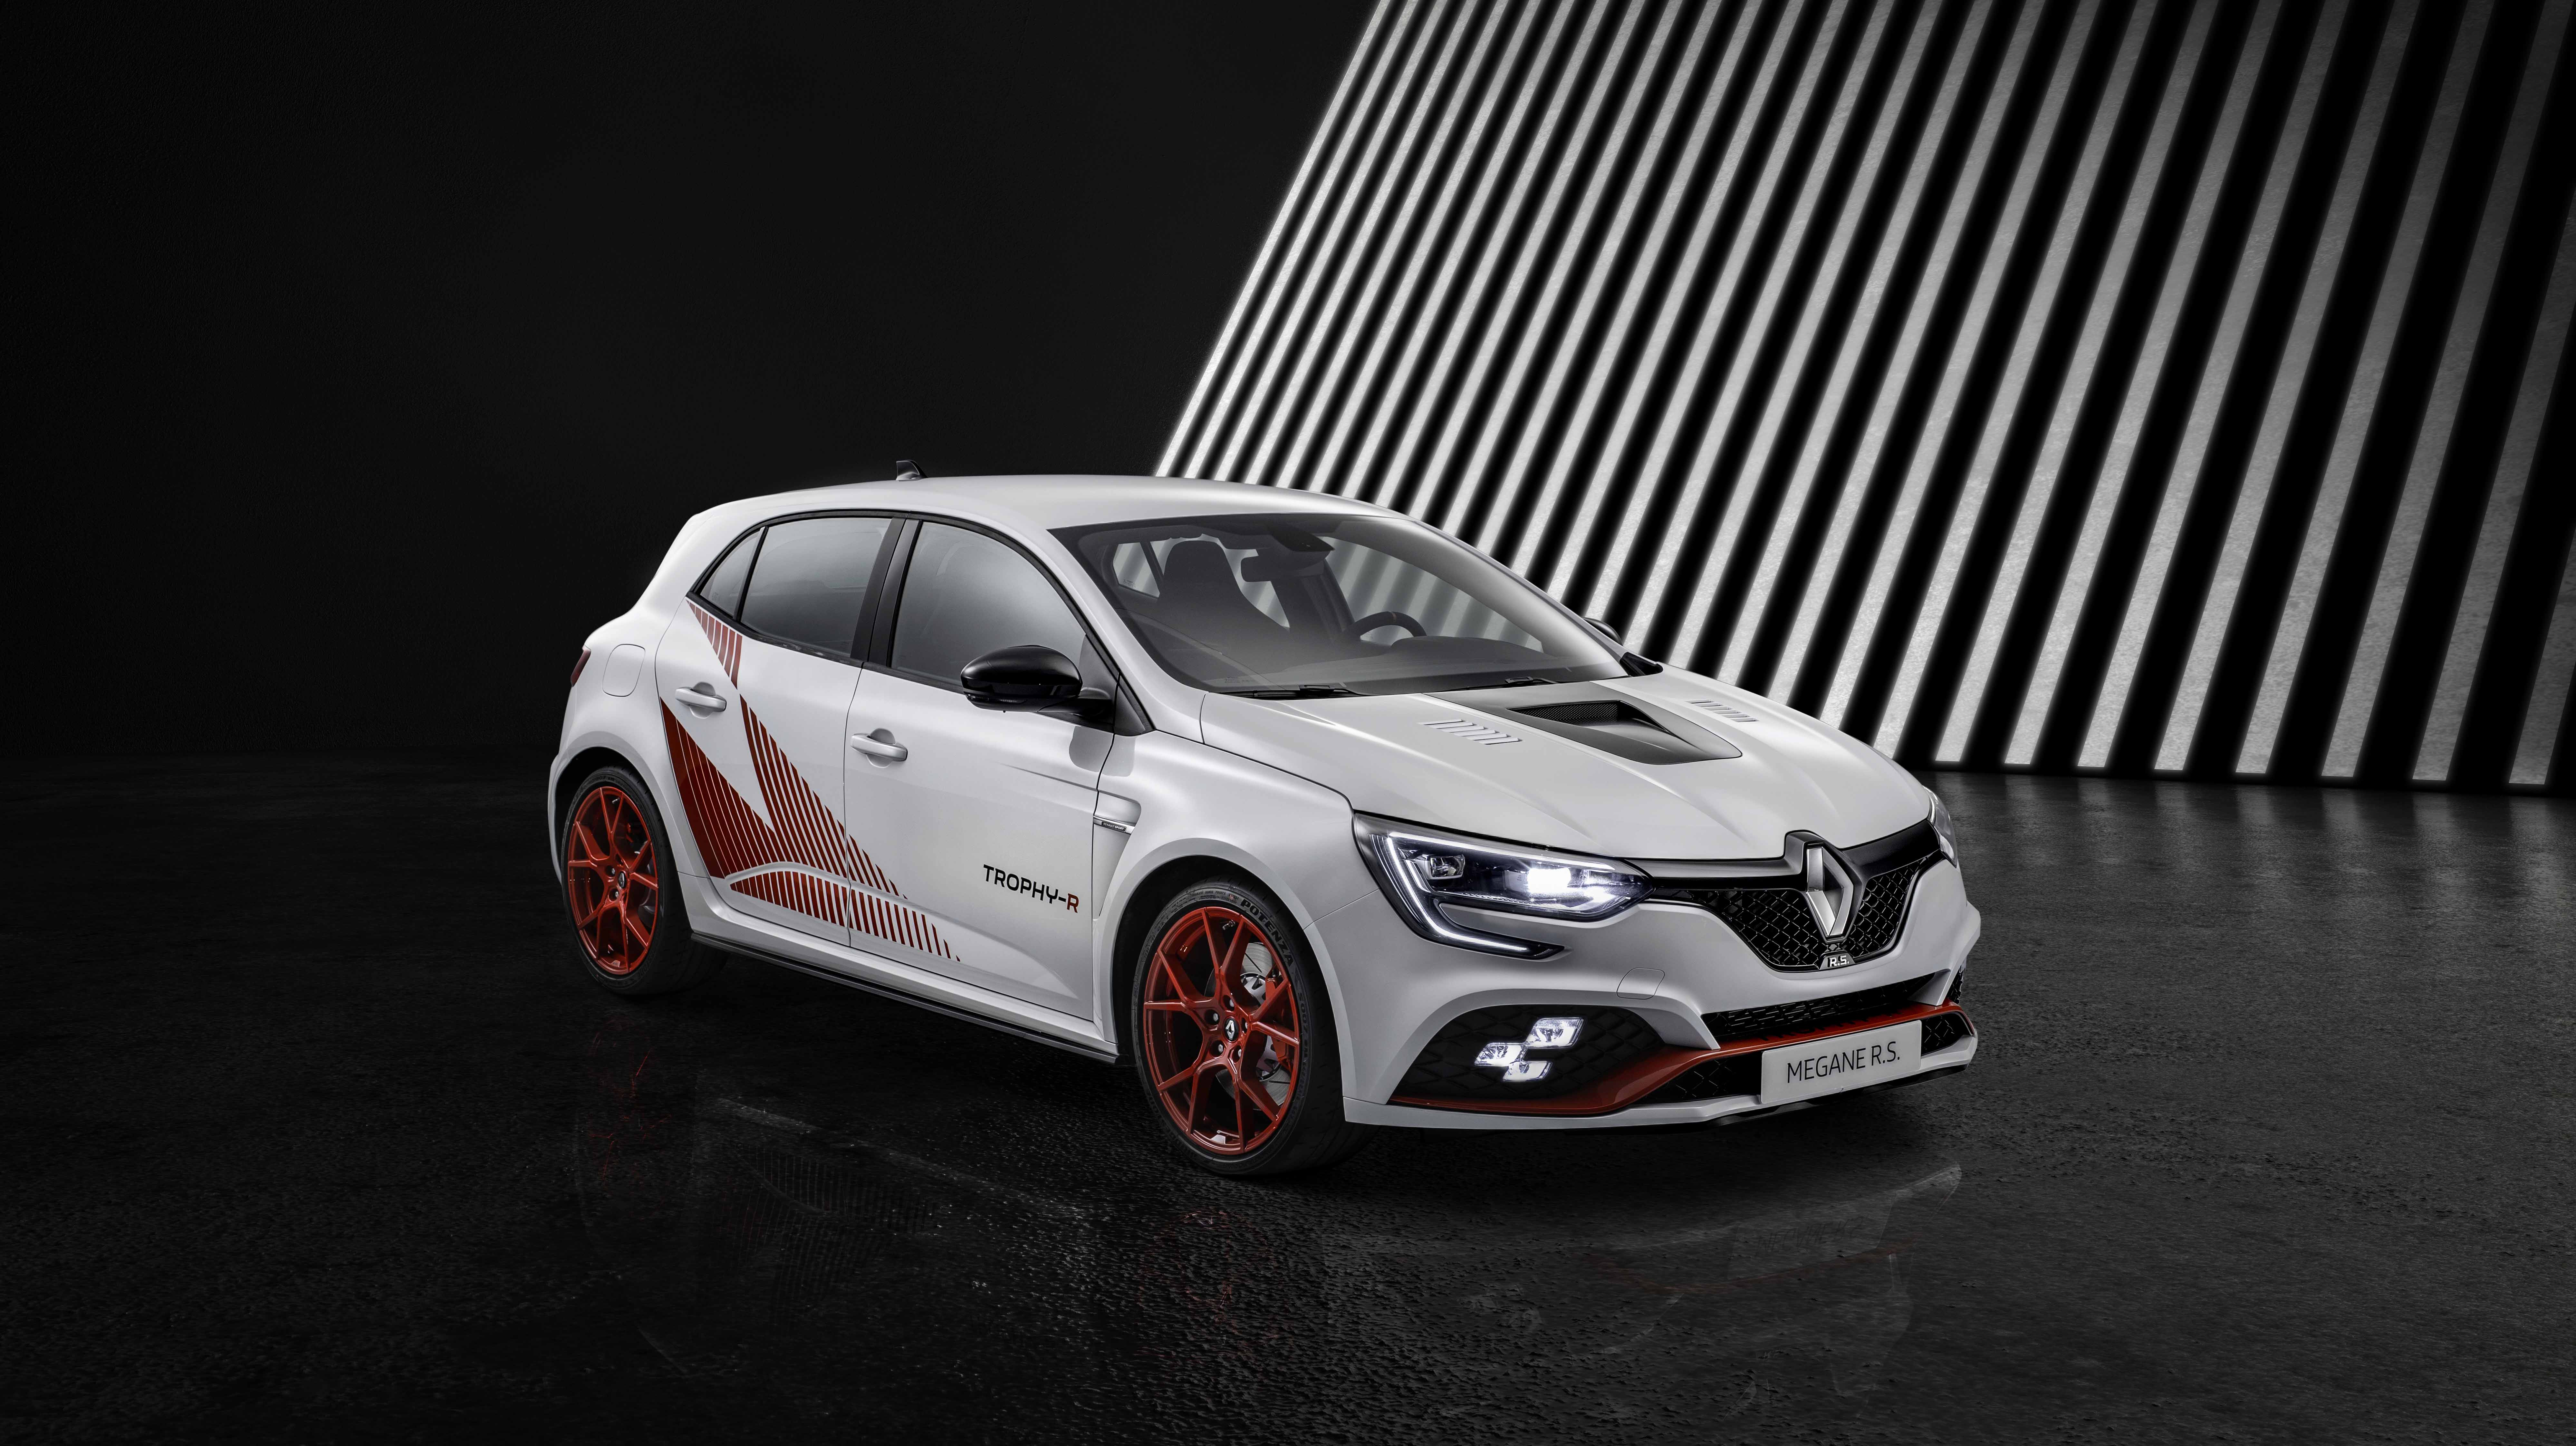 2019 Renault Megane R S Trophy R Top Speed